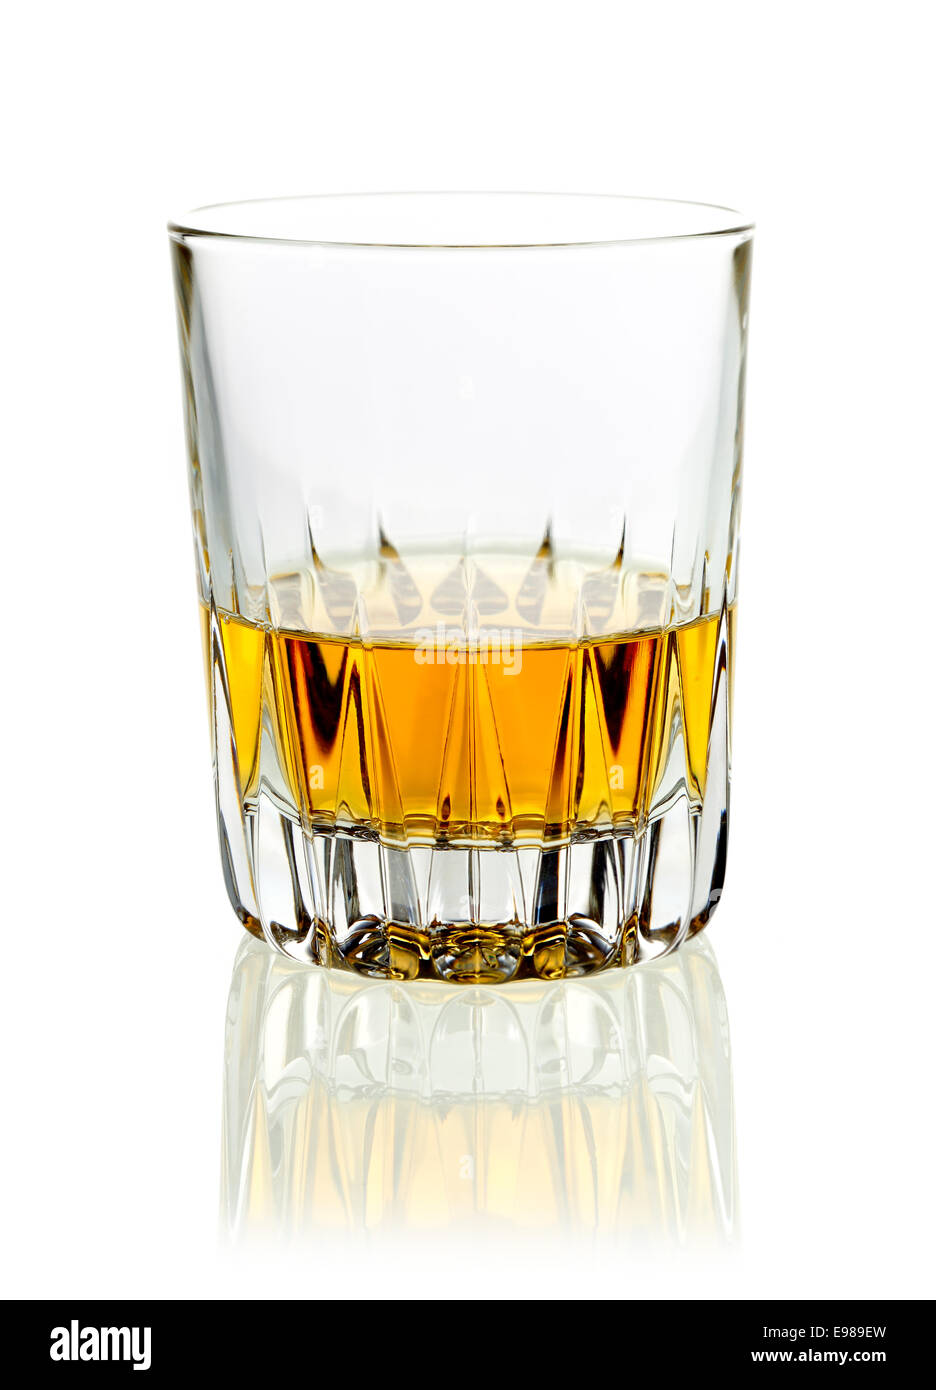 Tumbler of golden whisky or brandy served neat on a white studio background with reflection - Stock Image